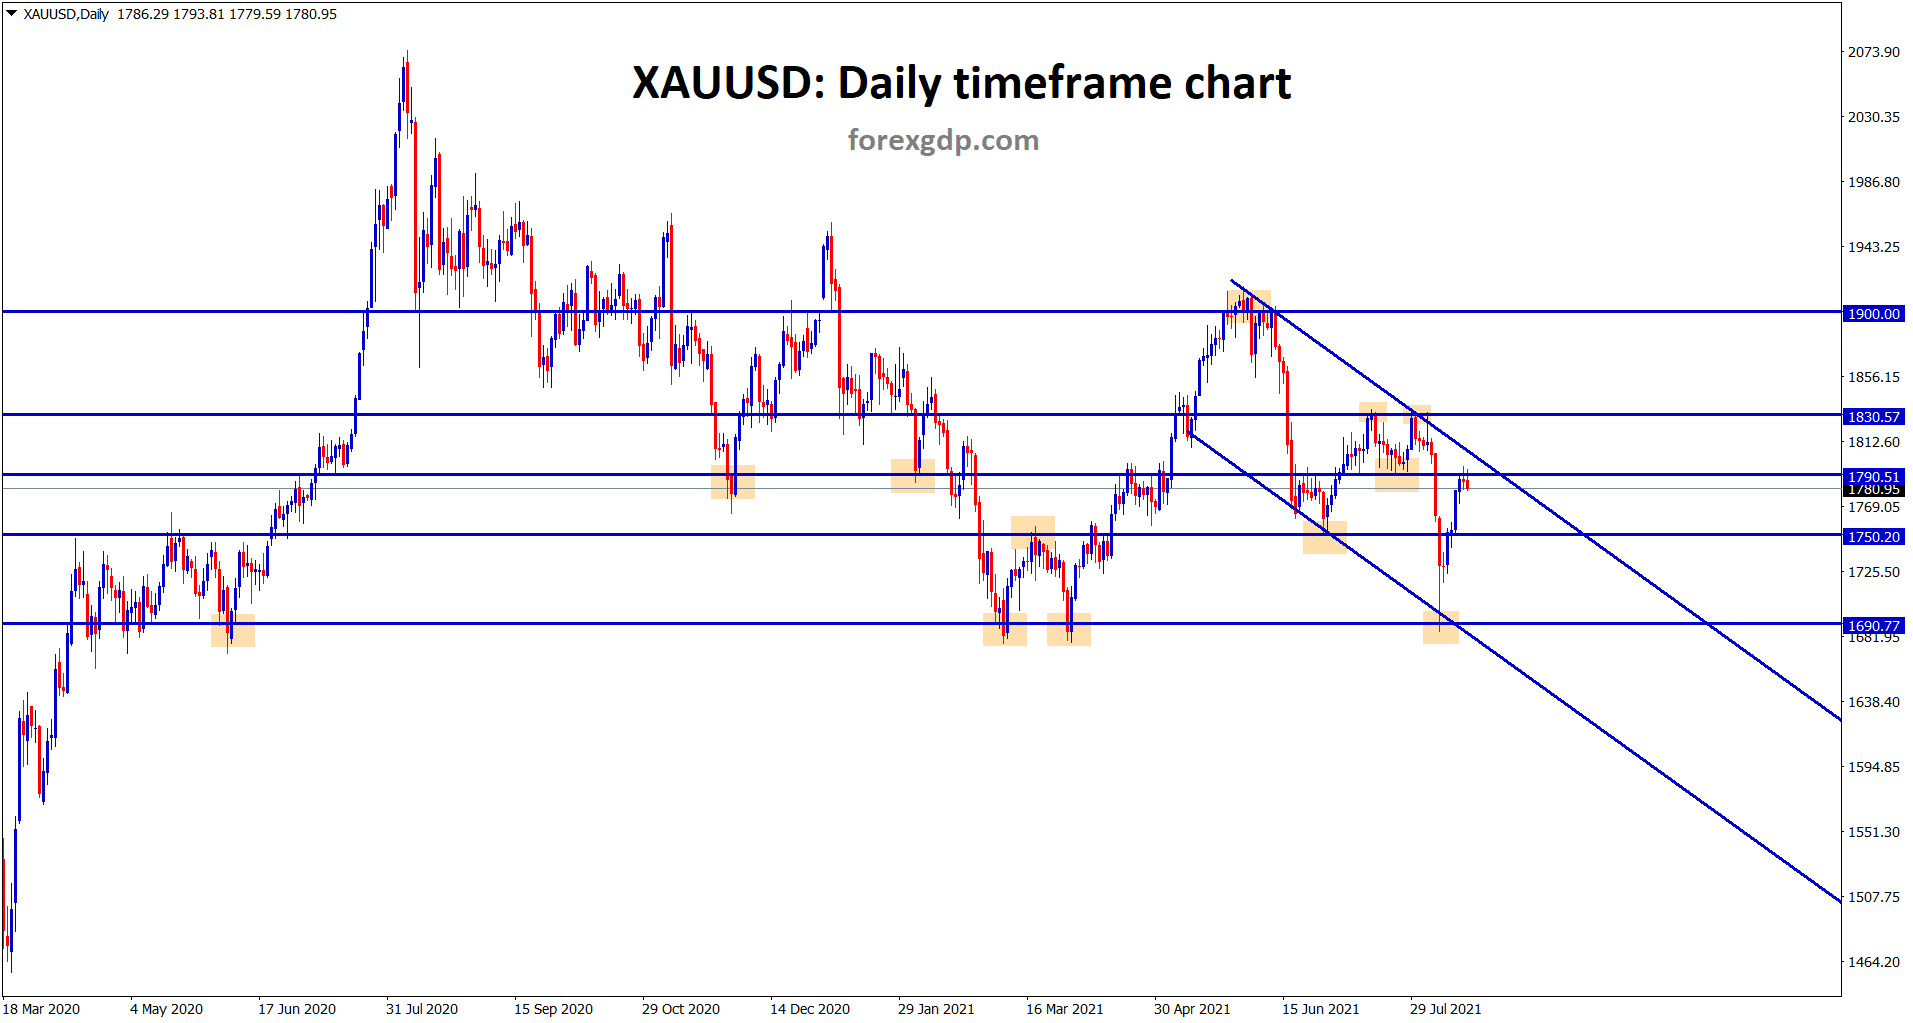 Gold is trying to make a correction after retesting the previous support level twice